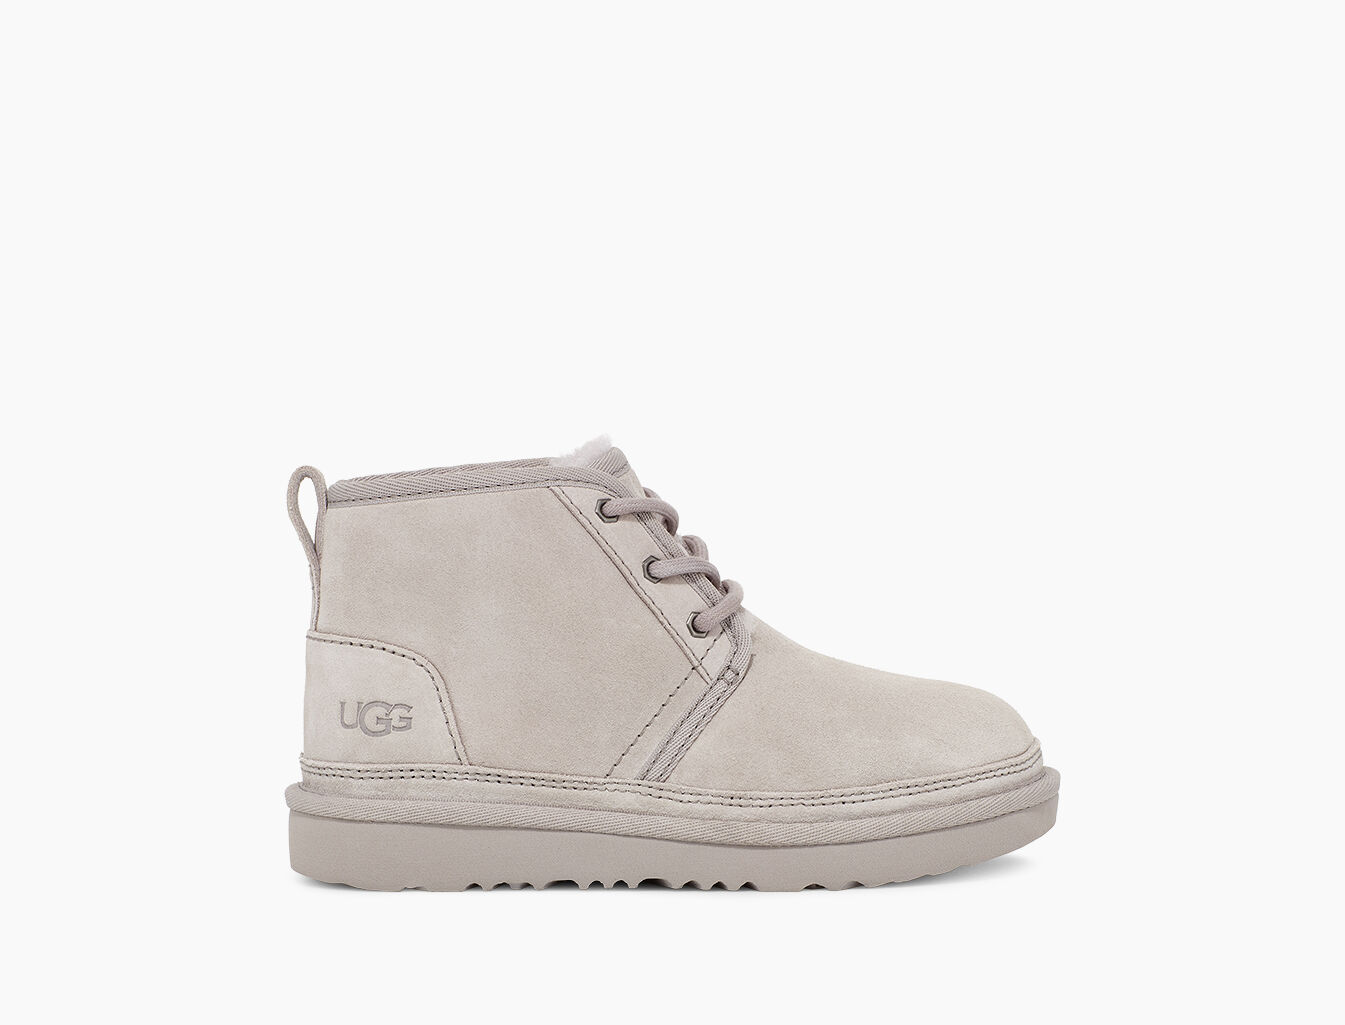 Uggstore outlet Reviews 19 Reviews of Uggstore